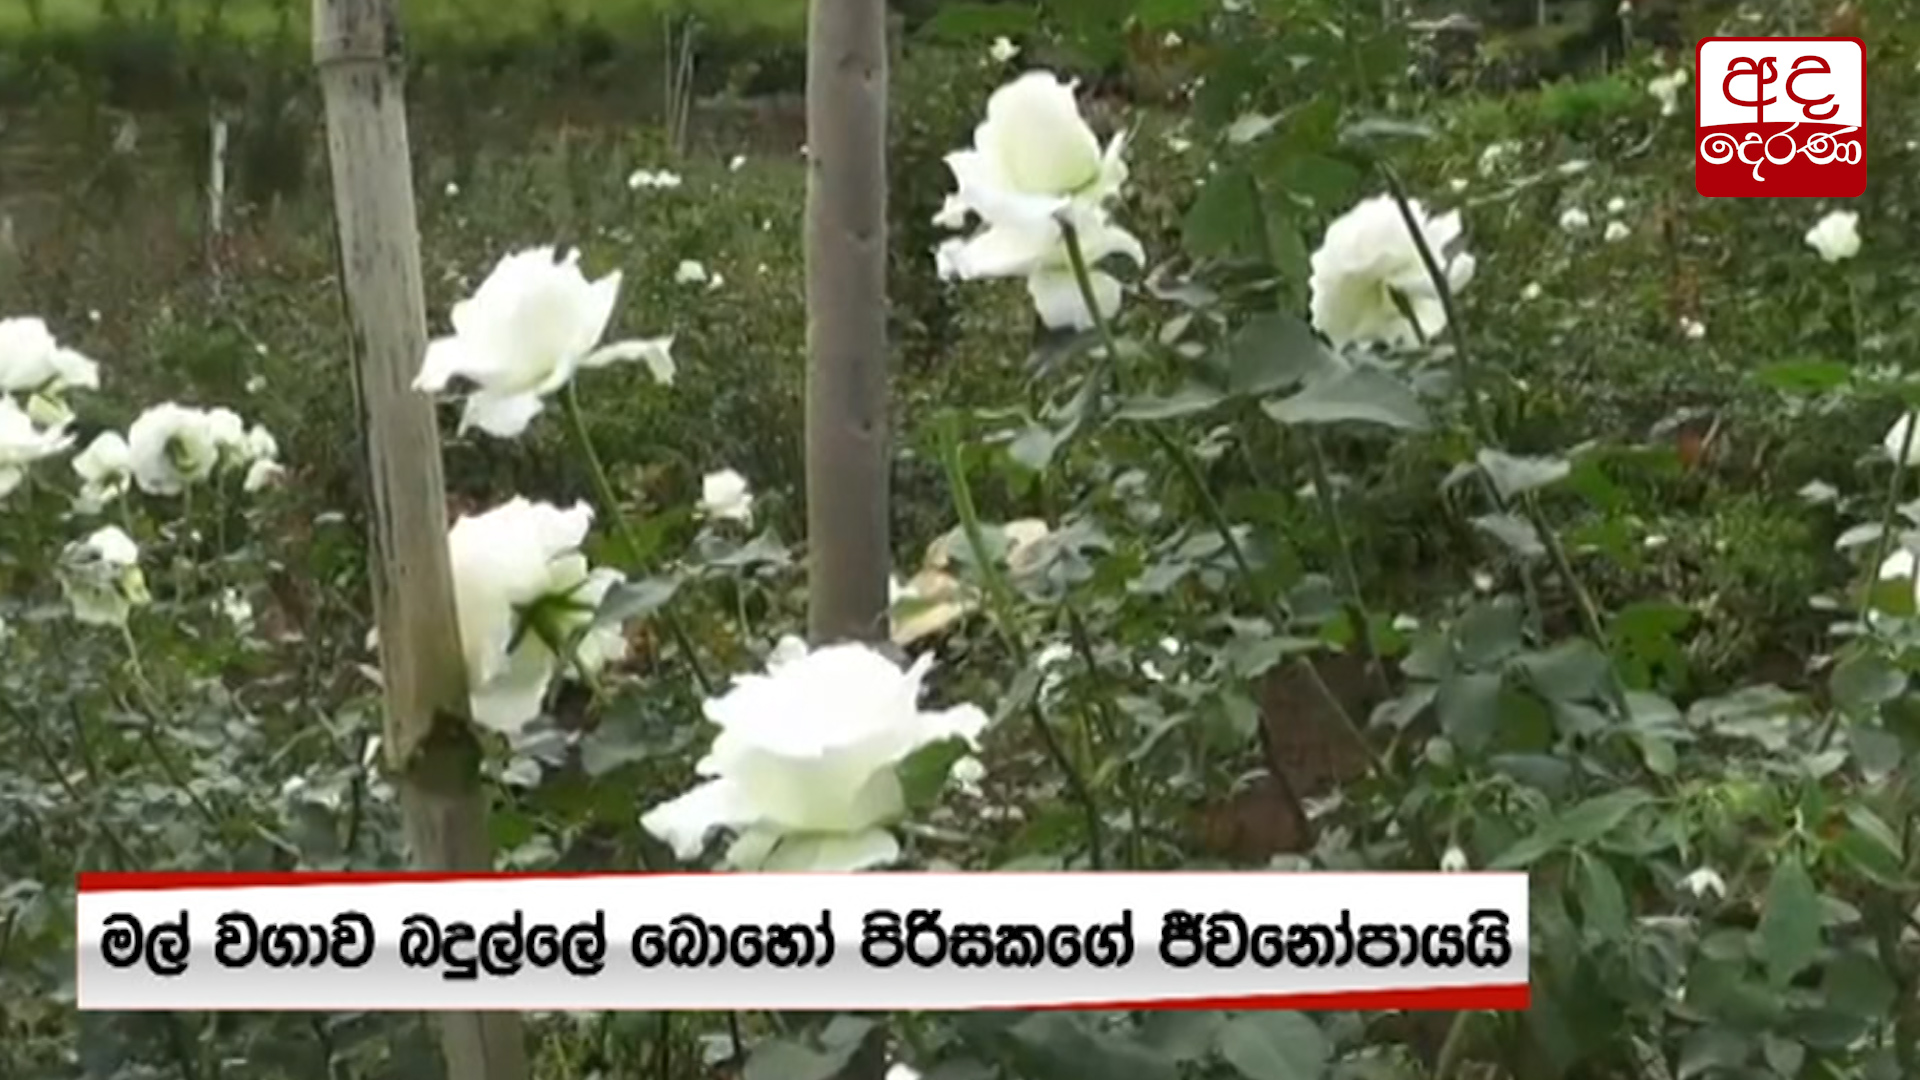 Flower growers affected by Covid-19 outbreak